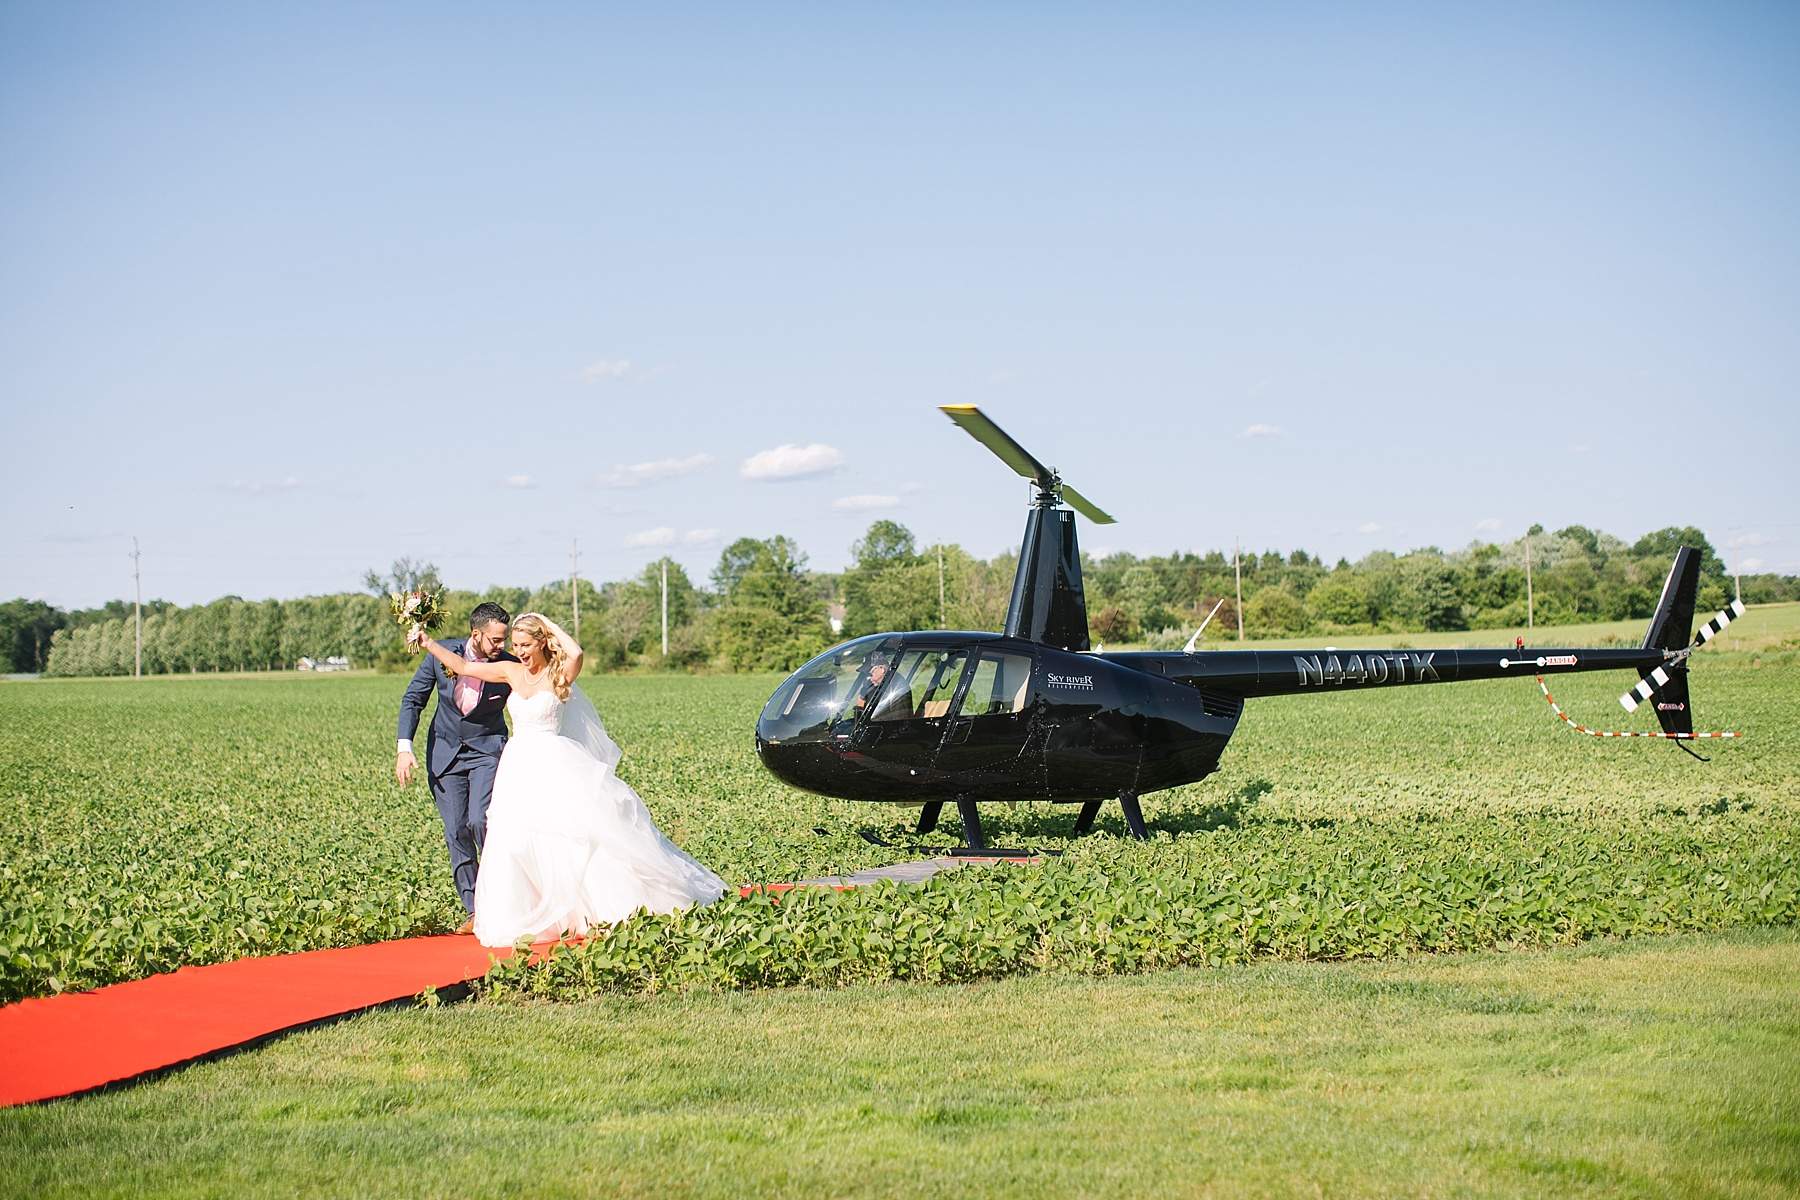 Ashley Mac Photographs | NJ Wedding photographer | PA Wedding photographer | Shan-Gri-La Farm Wedding | Shan-Gri-La Farm | Sellerville PA Wedding photographer | Plumsteadville PA wedding photographer, Pennsylvania wedding, wedding photography, outdoor summer wedding